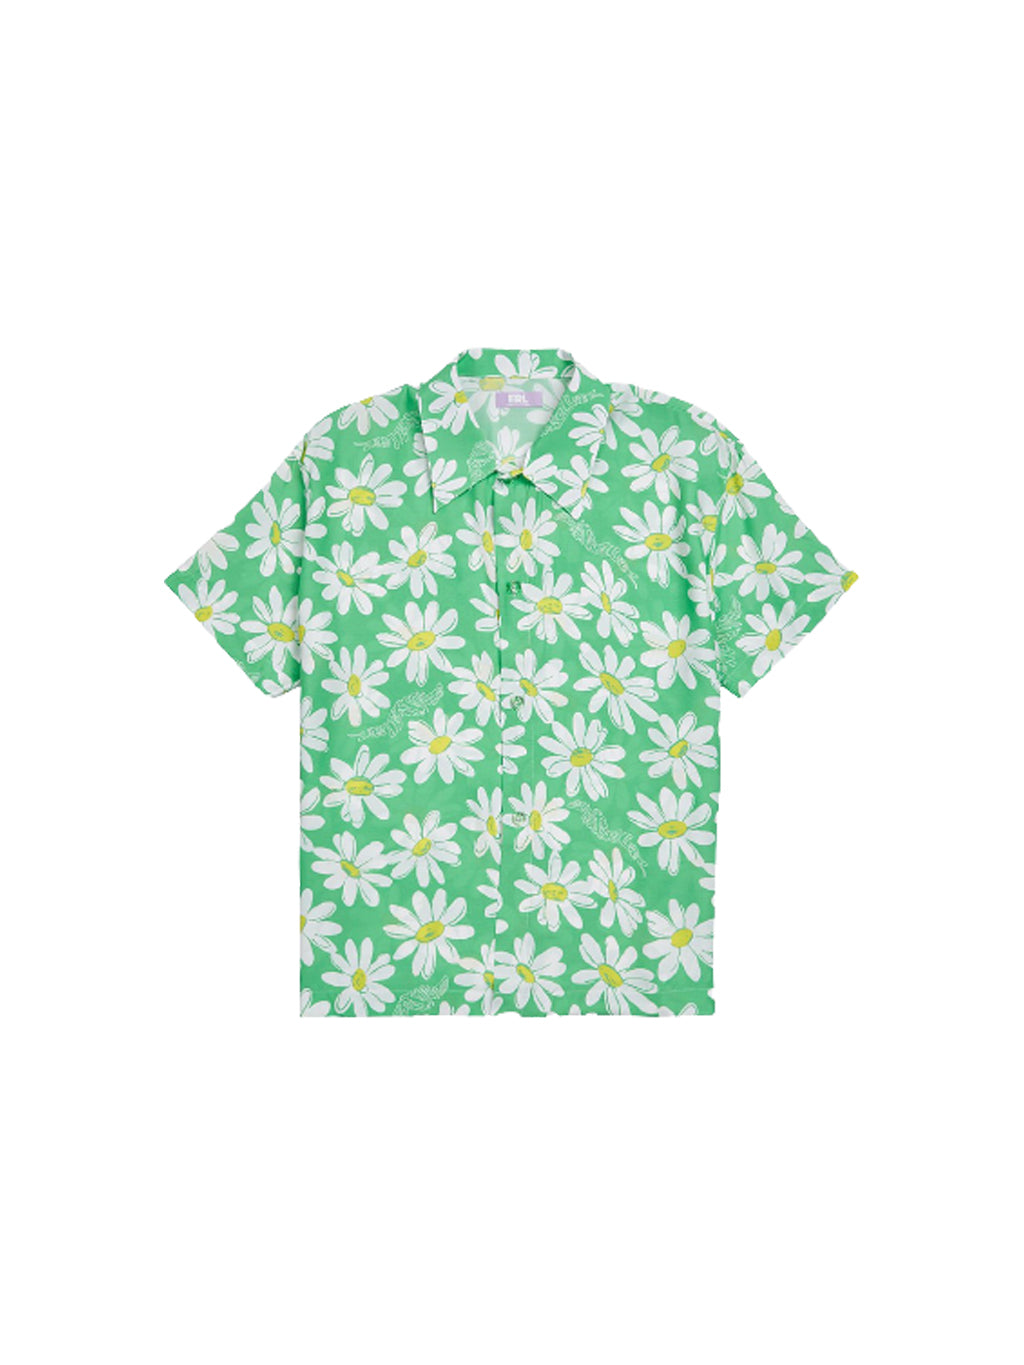 Green Daisy Shirt